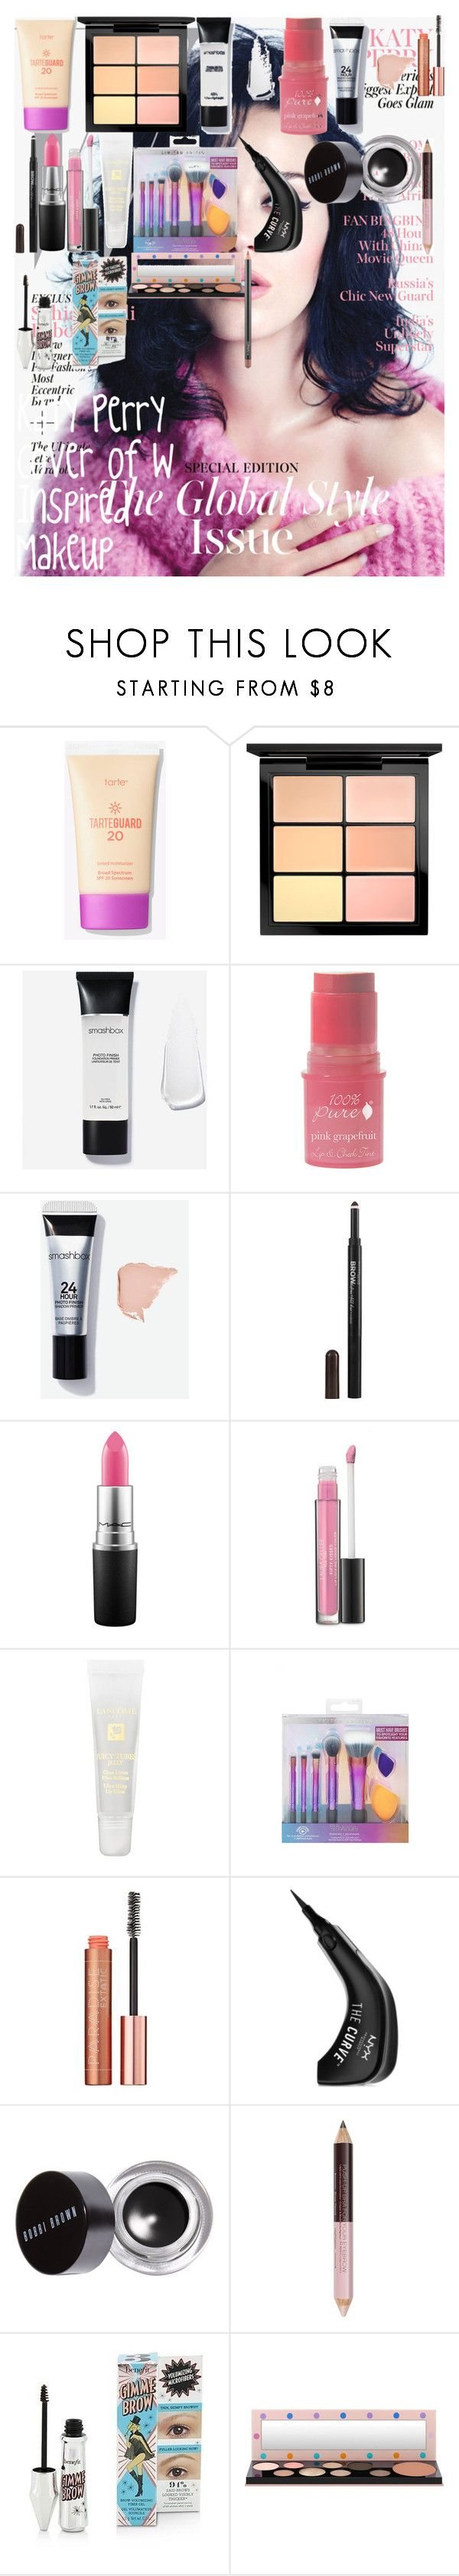 """Katy Perry Cover of W Inspired Makeup"" by oroartyellie on Polyvore featuring beauty, MAC Cosmetics, 100% Pure, Maybelline, Laura Geller, Lancôme, L'Oréal Paris, NYX and Bobbi Brown Cosmetics"